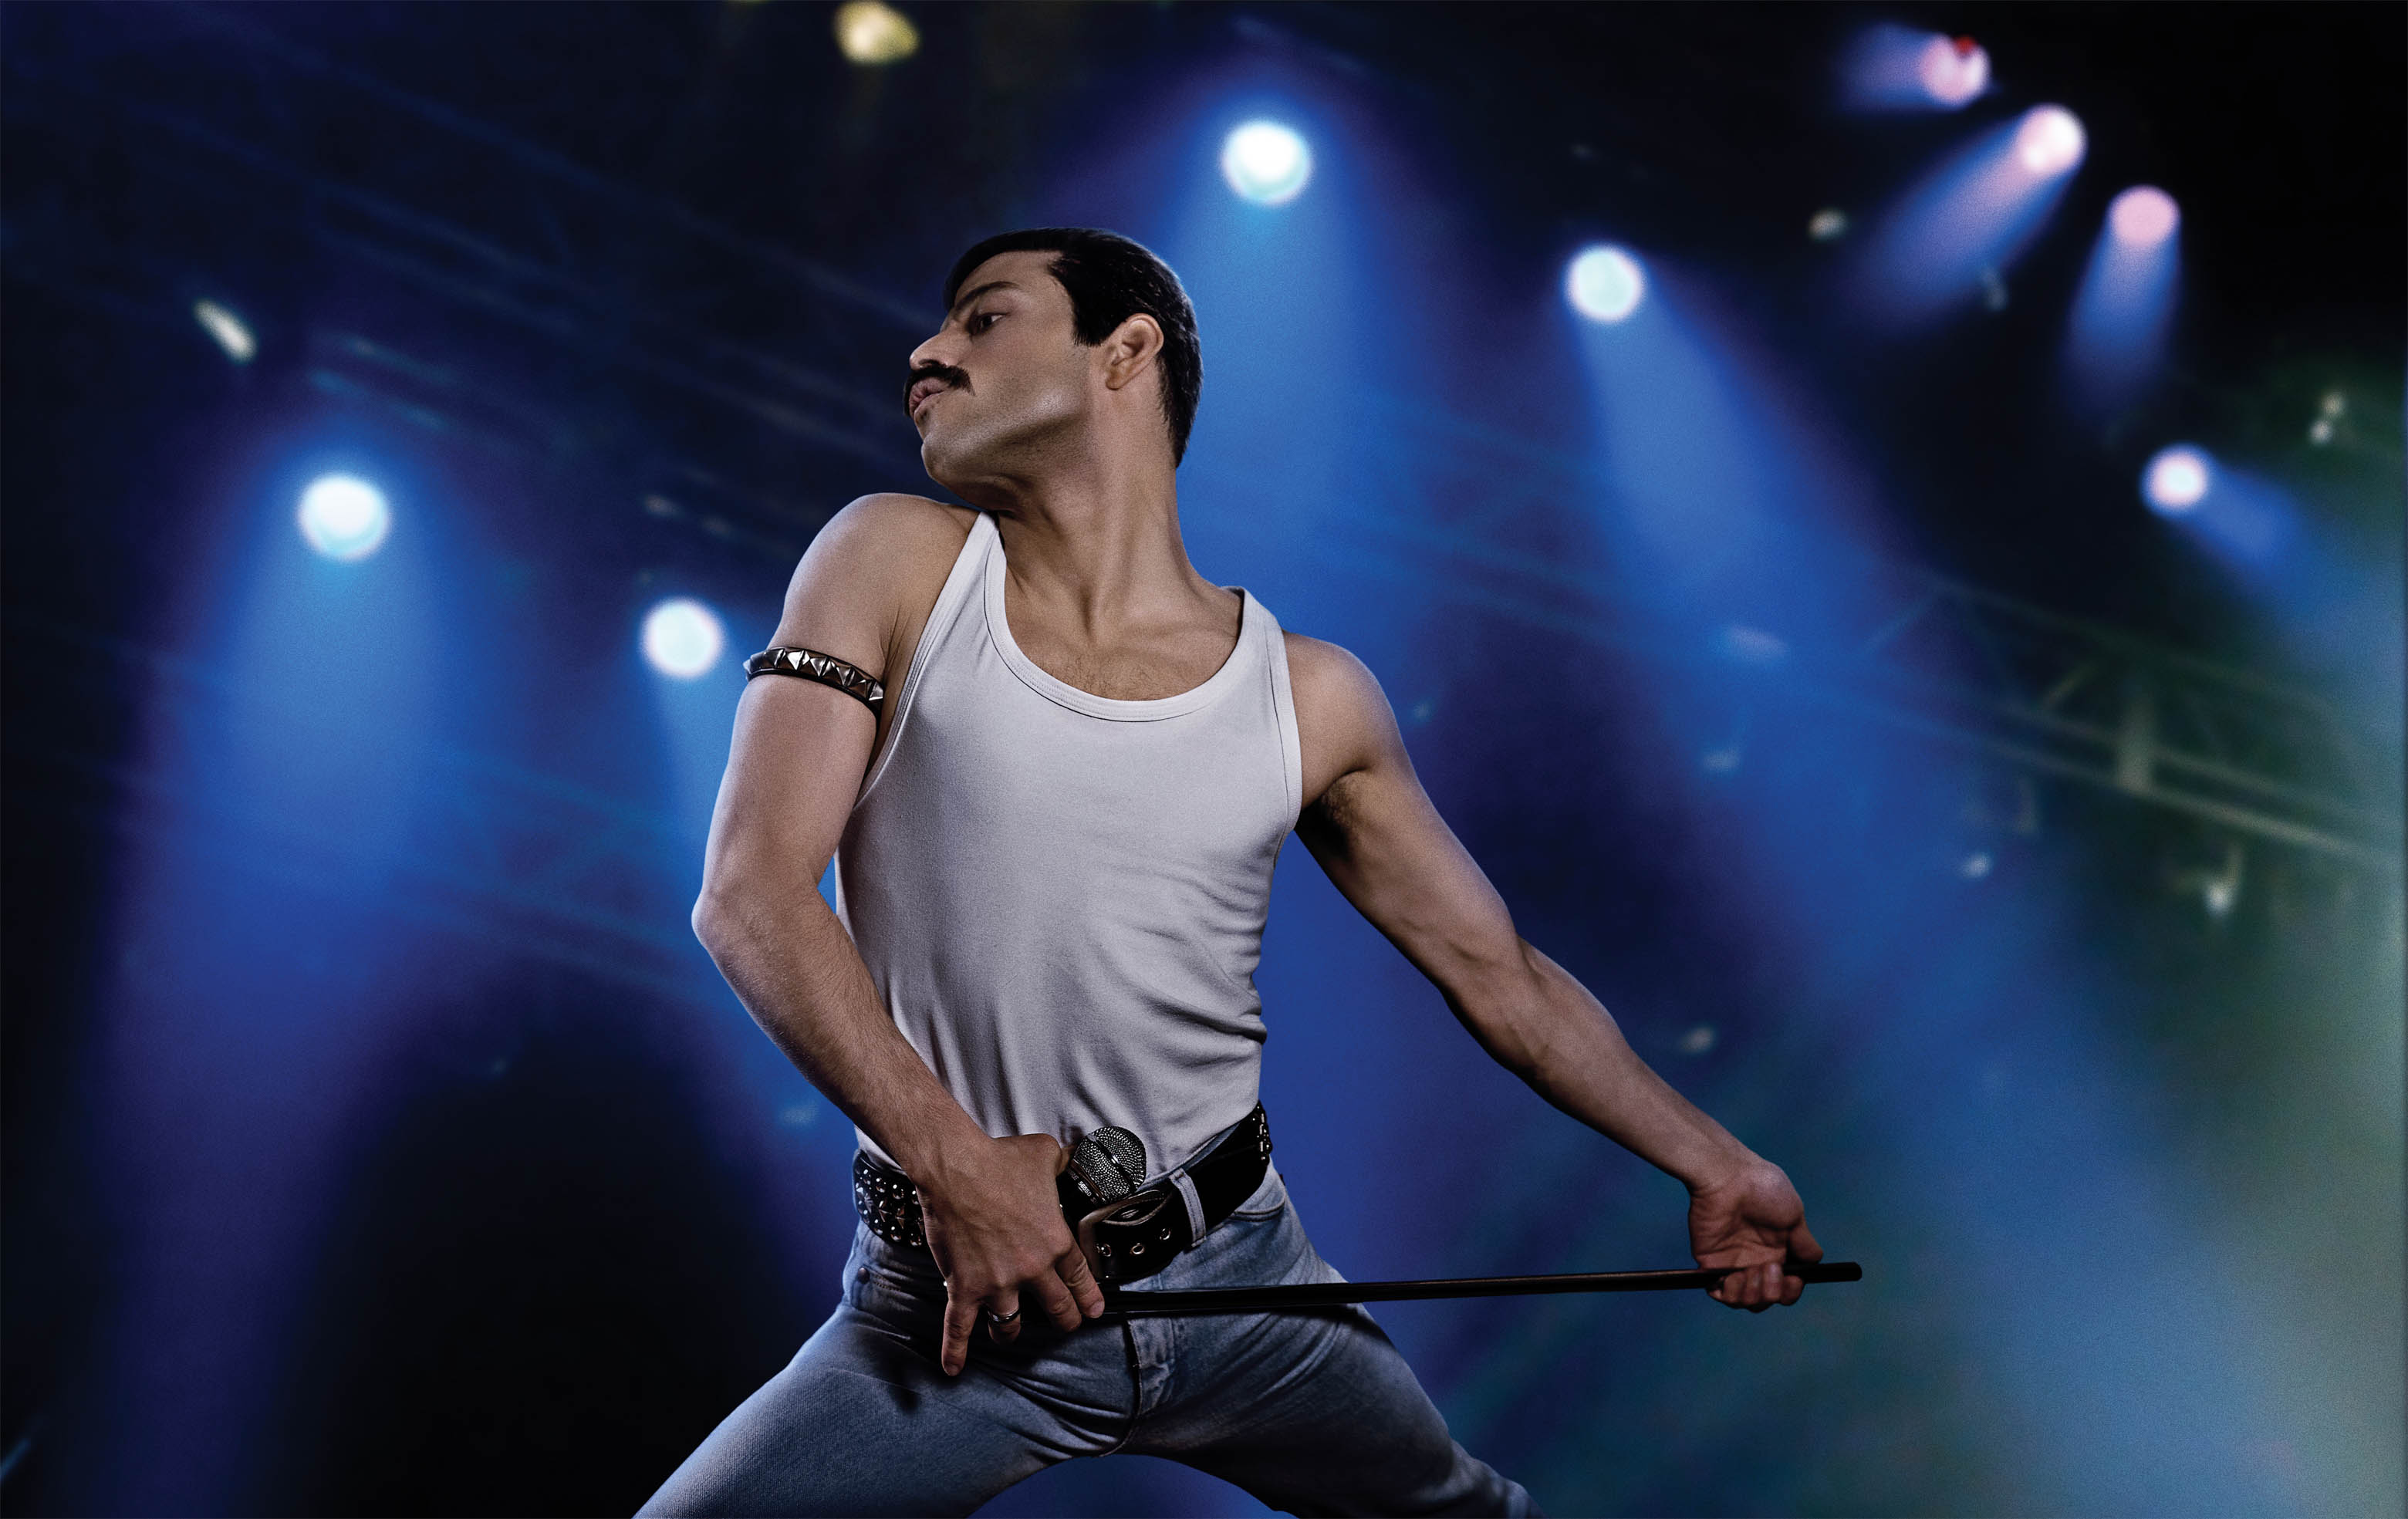 RAMI MALEK. The Egyptian-American actor transforms into Freddie Mercury at the 1985 Live Aid concert. Photo courtesy of 20th Century Fox/New Regency